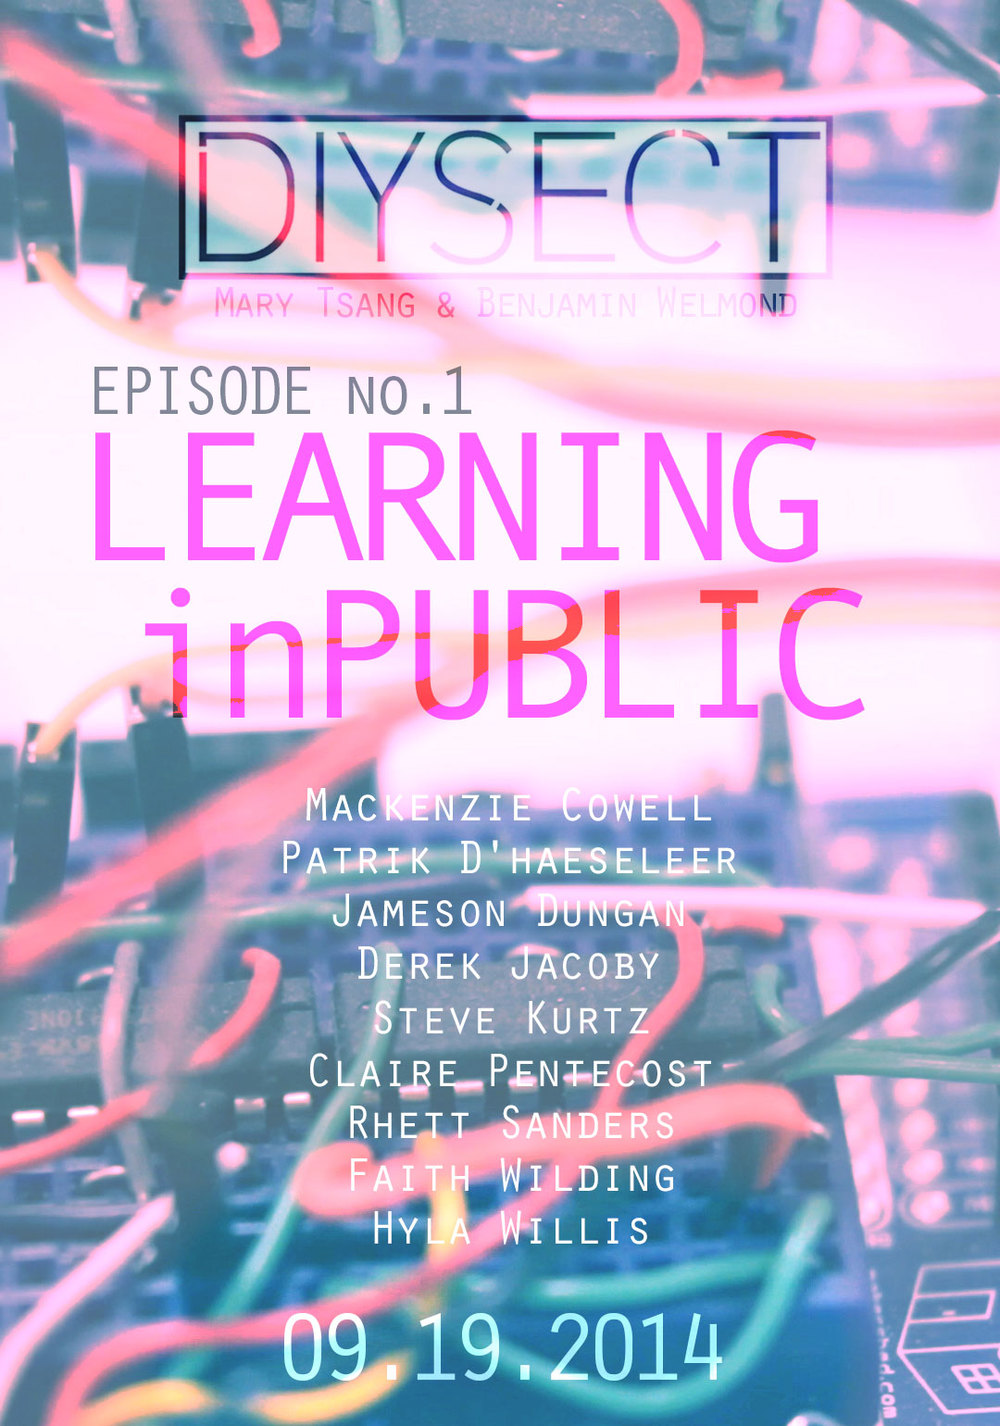 diysect01learninginpublic